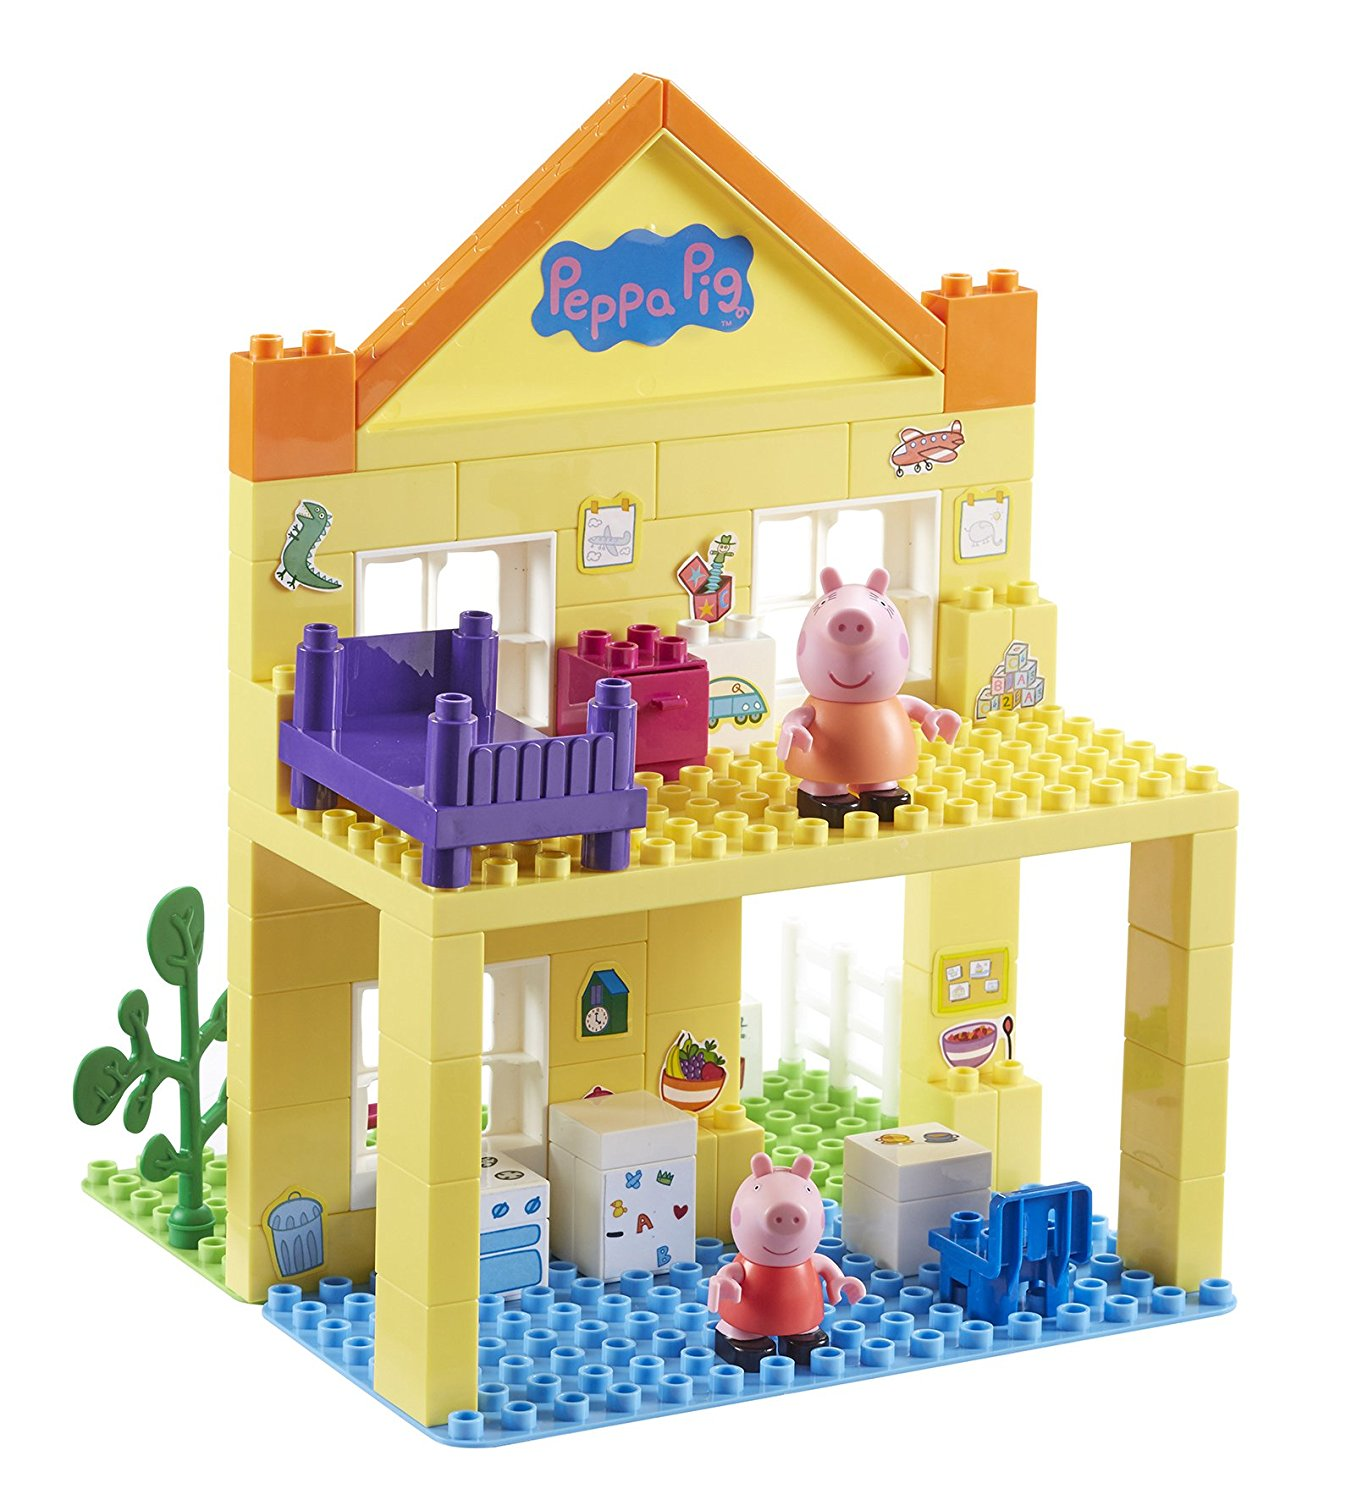 Deluxe Peppa's House Construc